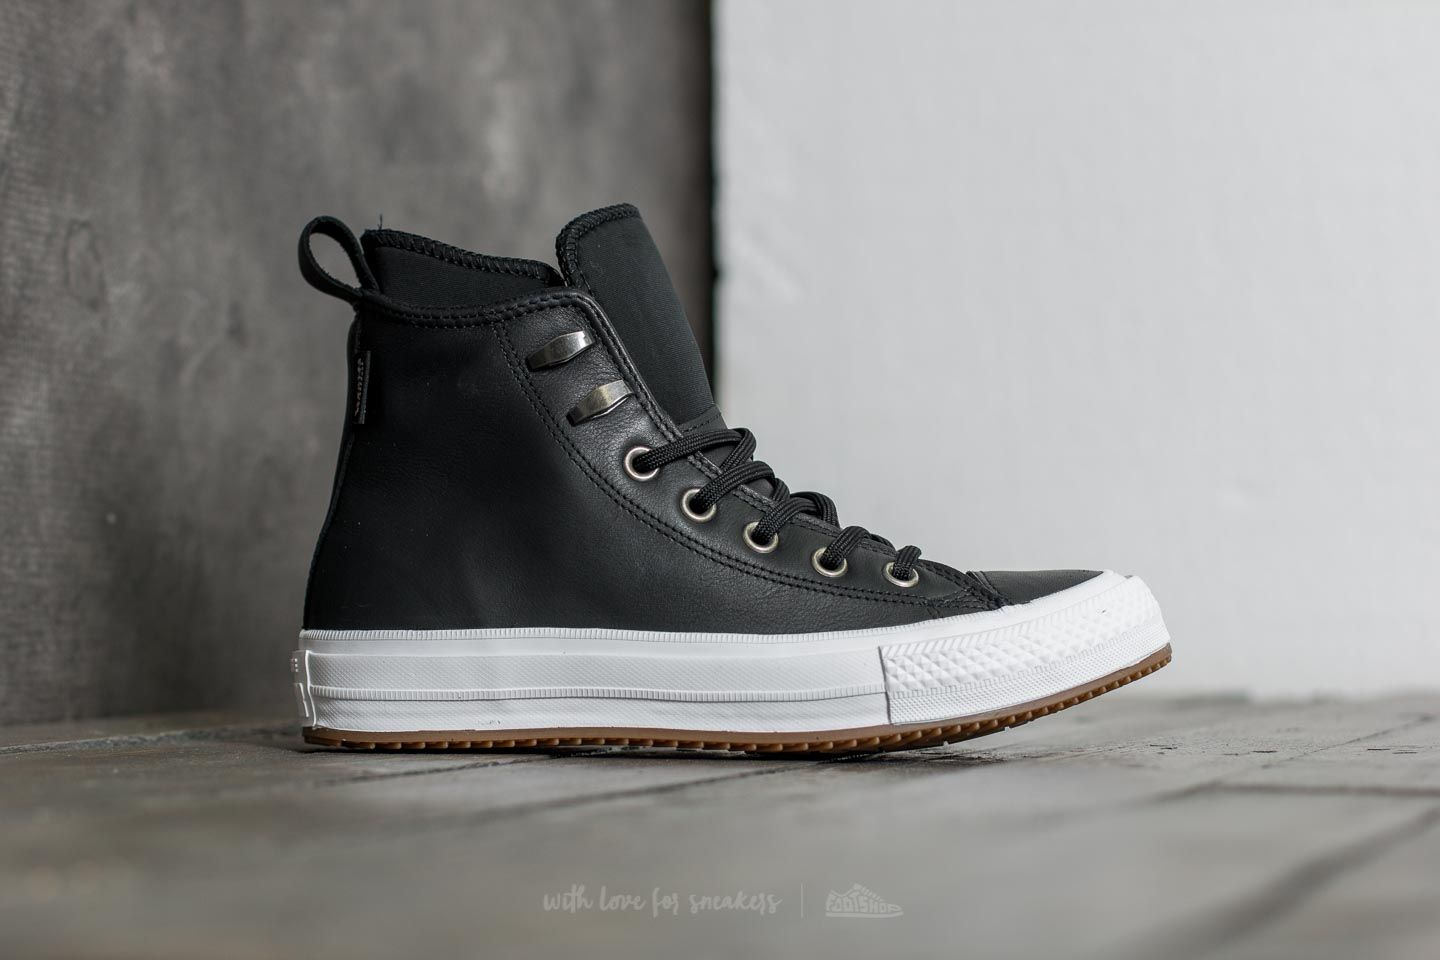 69f2a99edf40 Converse Chuck Taylor All Star Waterproof Boot Hi Black  Black  White at a  great